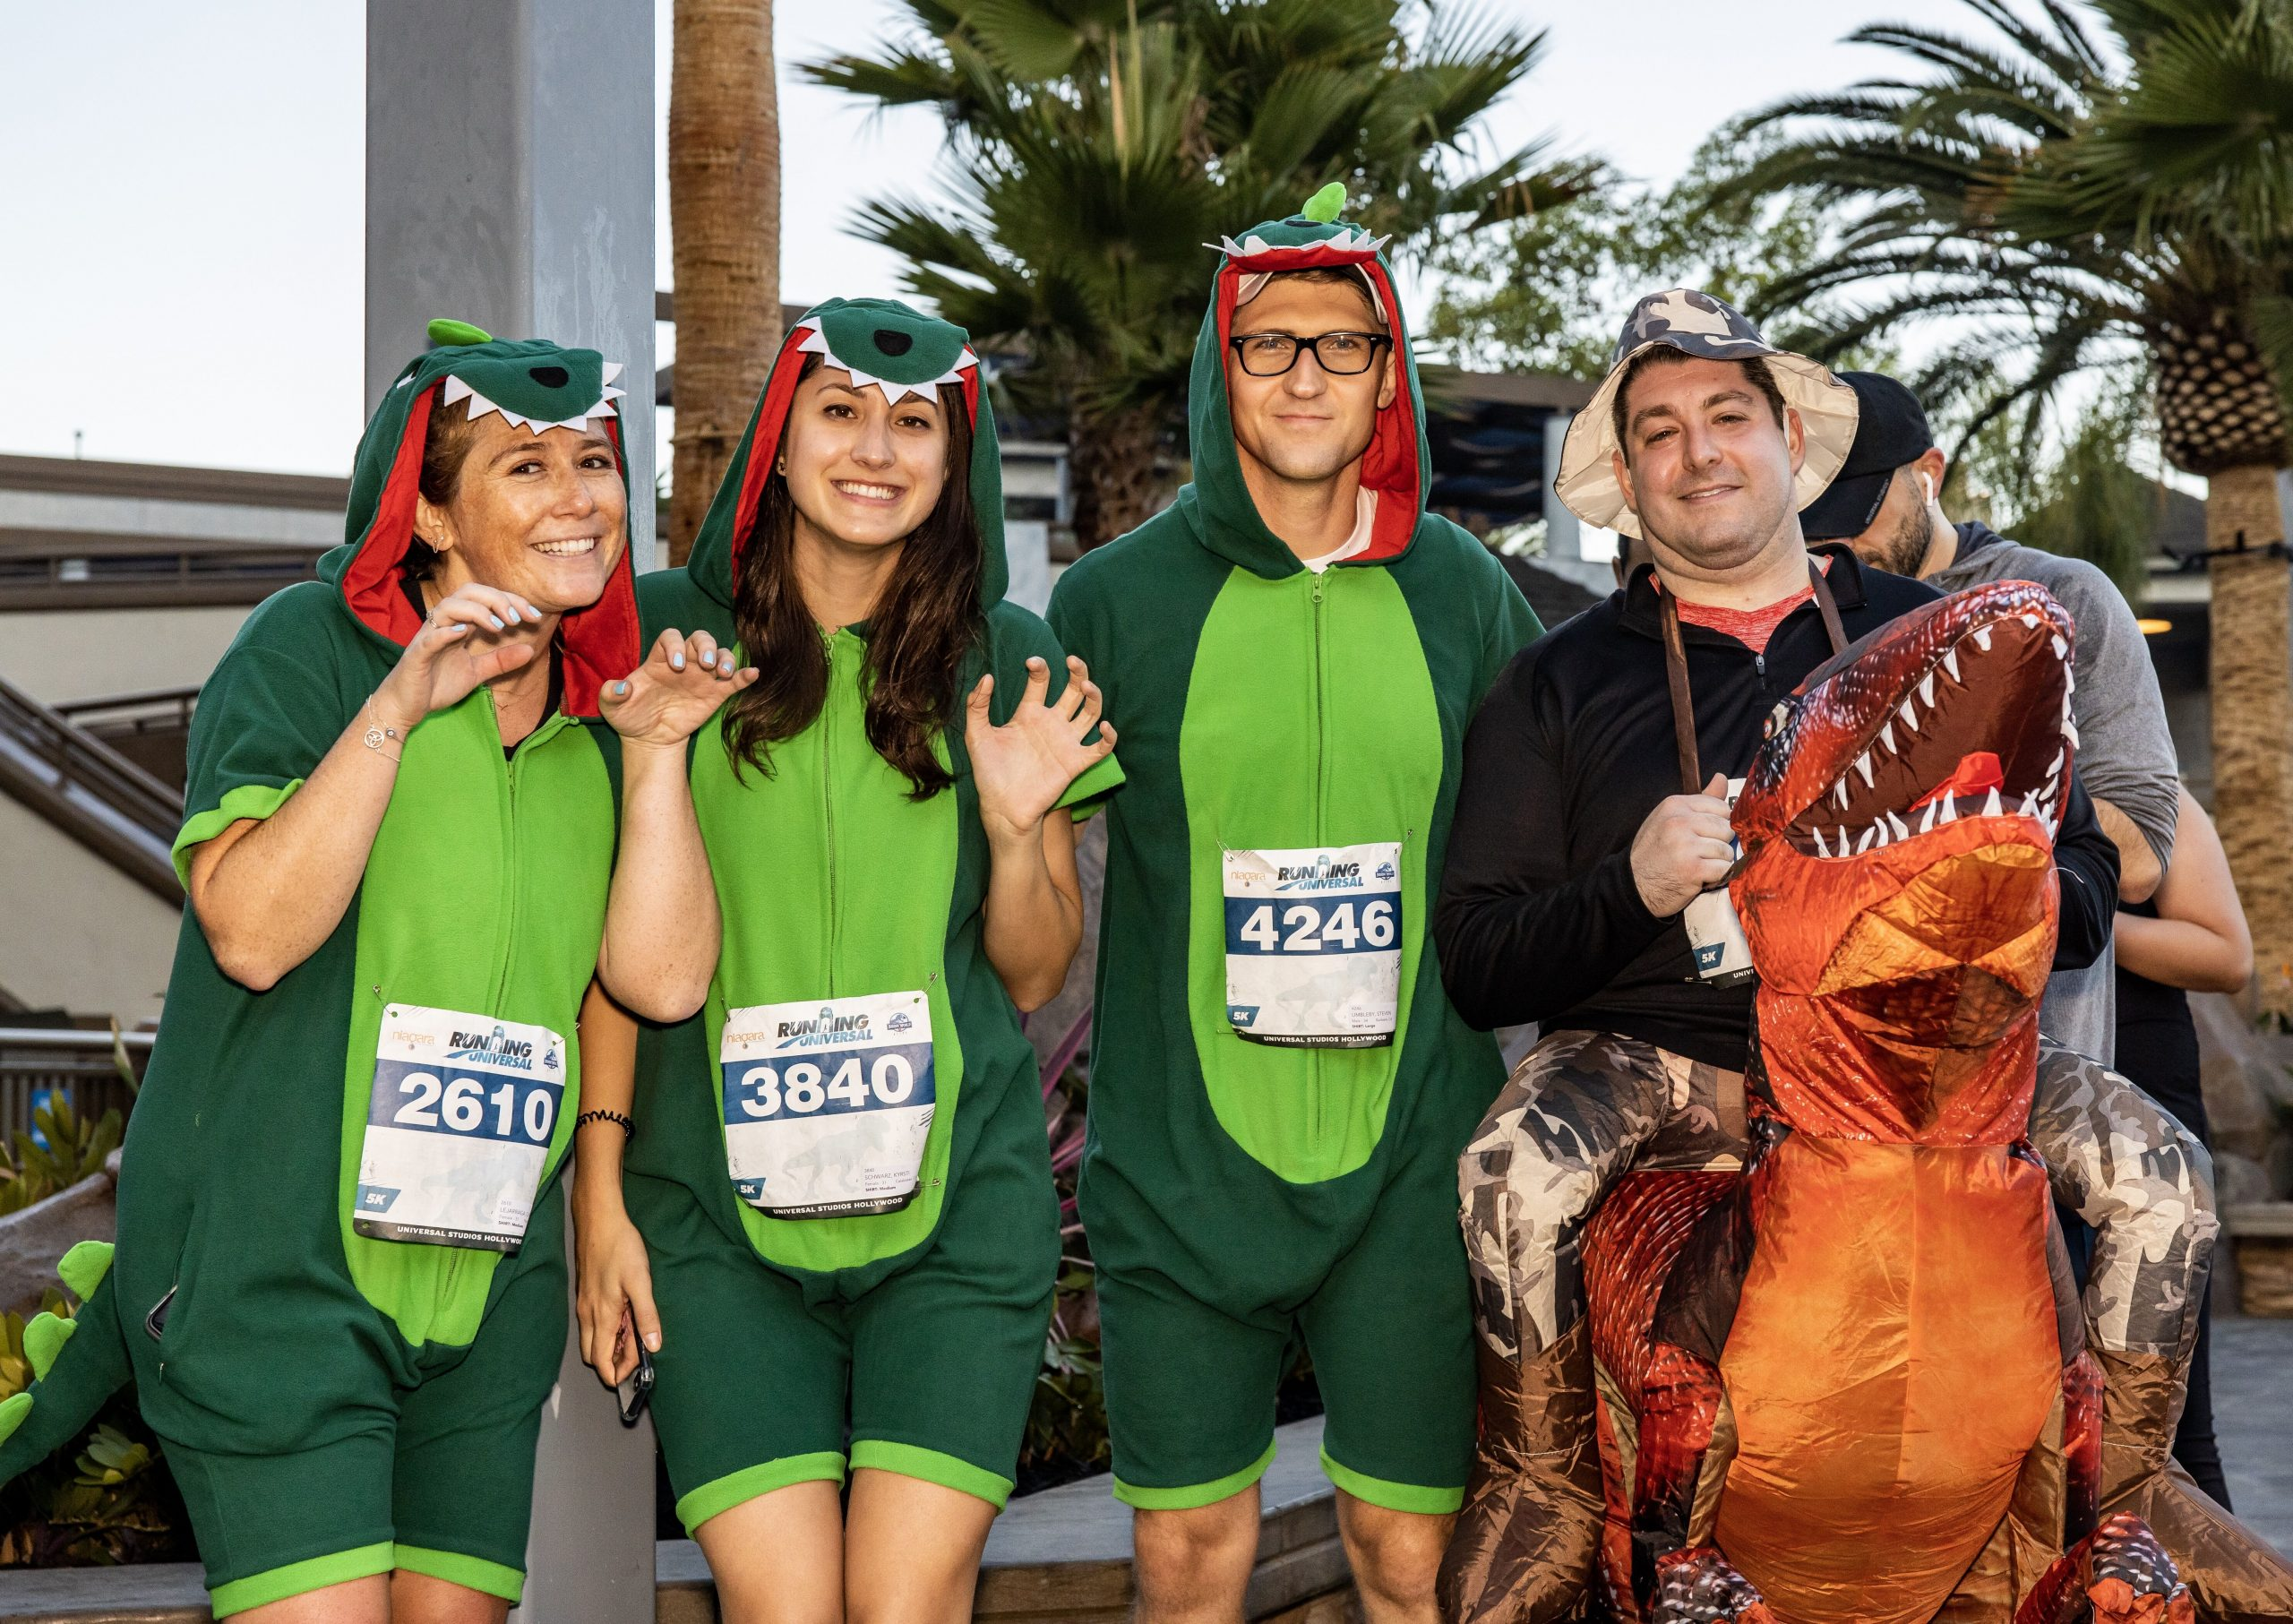 [Event Recap] Running Universal's Jurassic World 5K